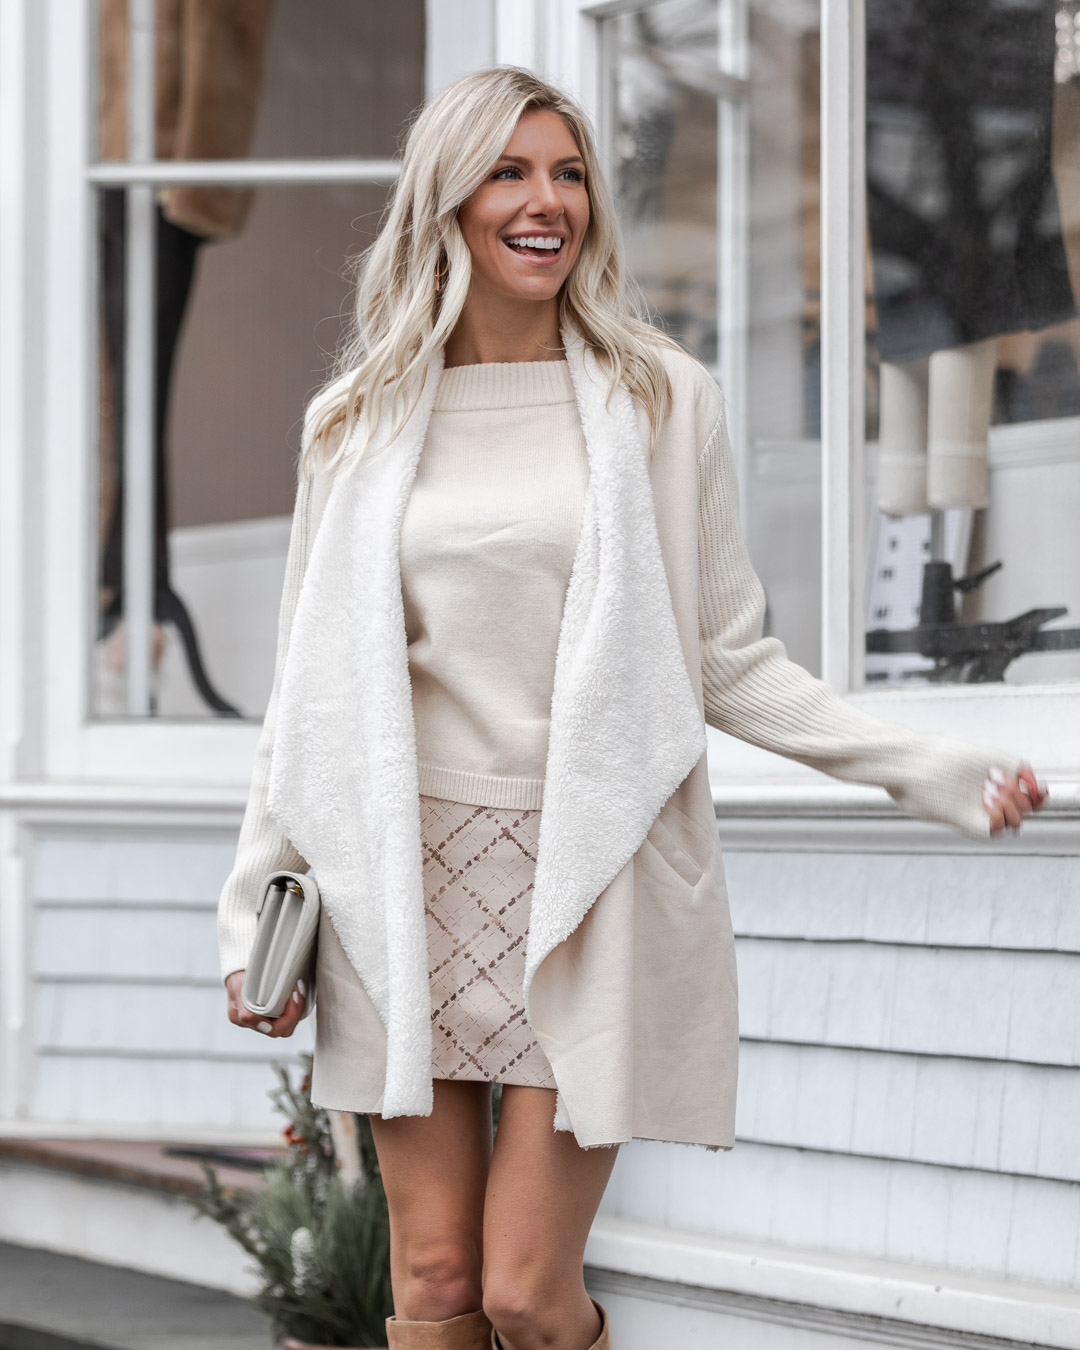 winter white outfit details The Glamorous Gal